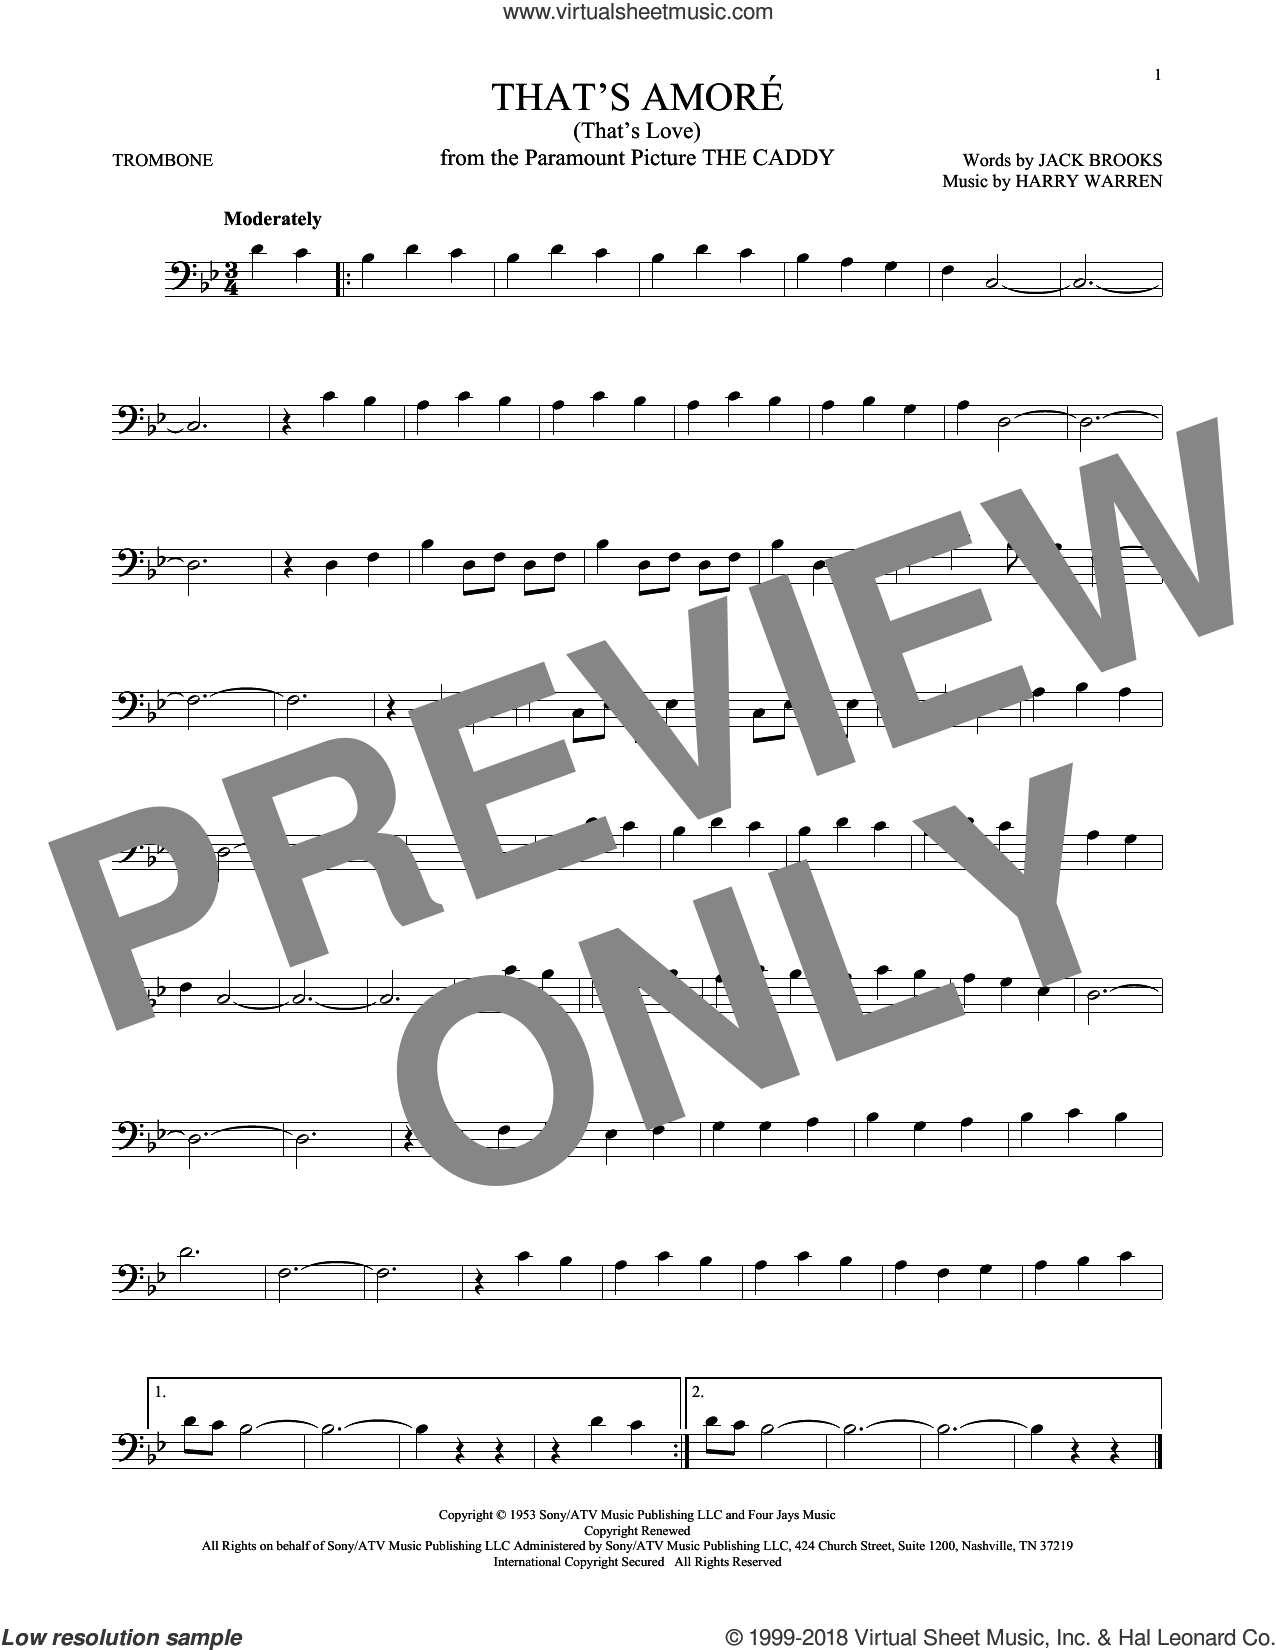 That's Amore (That's Love) sheet music for trombone solo by Dean Martin, Harry Warren and Jack Brooks, intermediate skill level